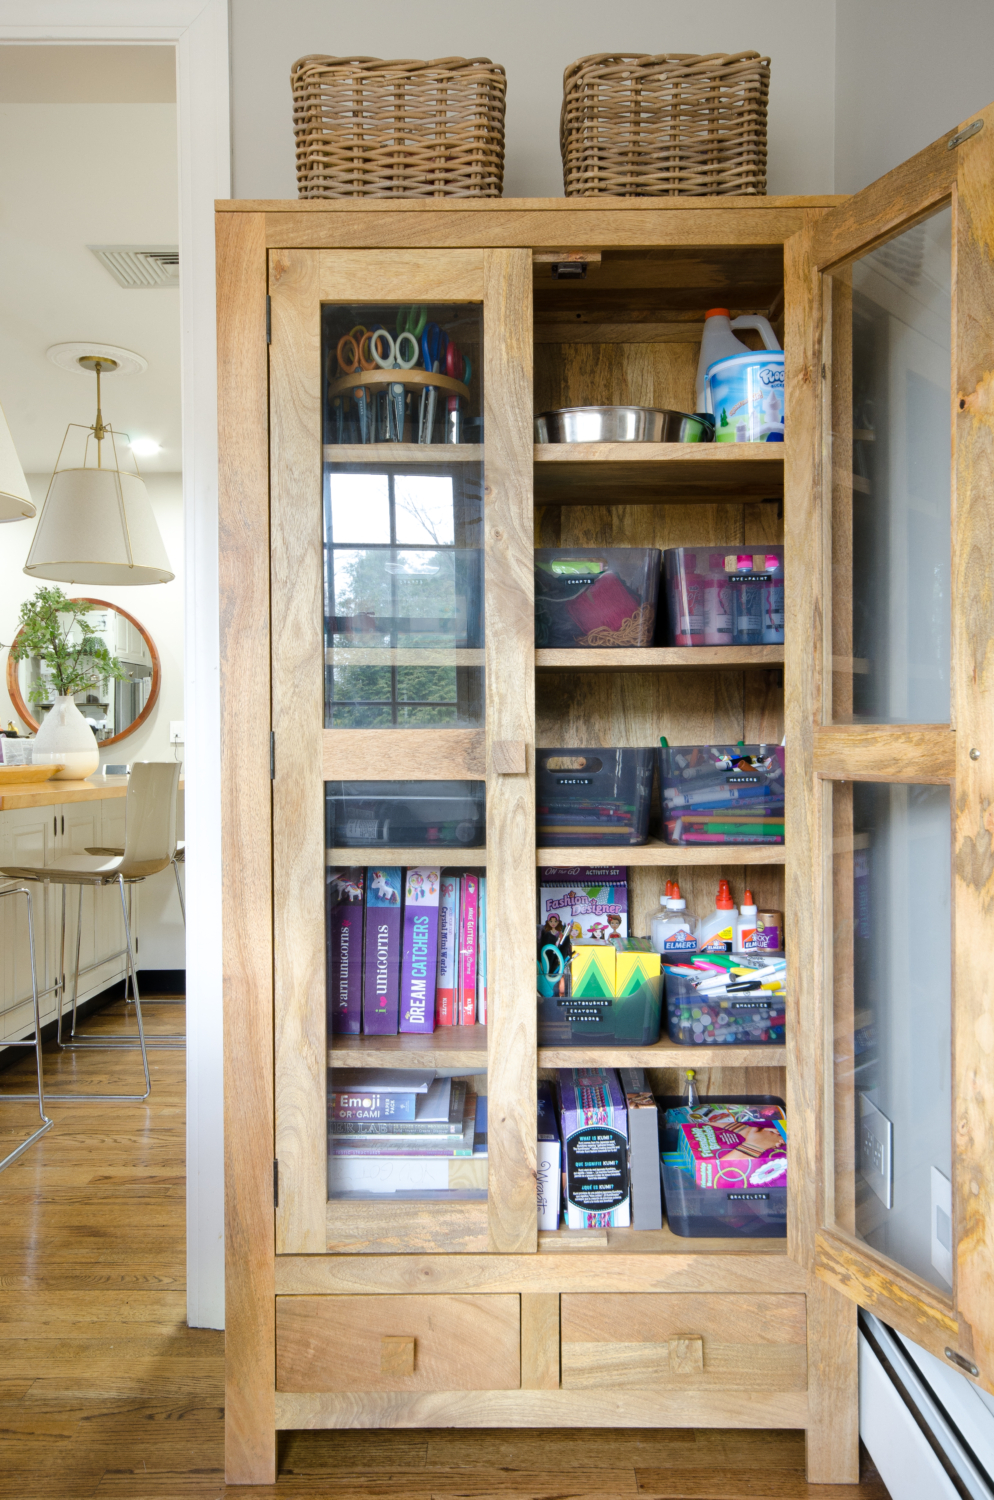 Glass front storage cabinet used to organize kids' art supplies